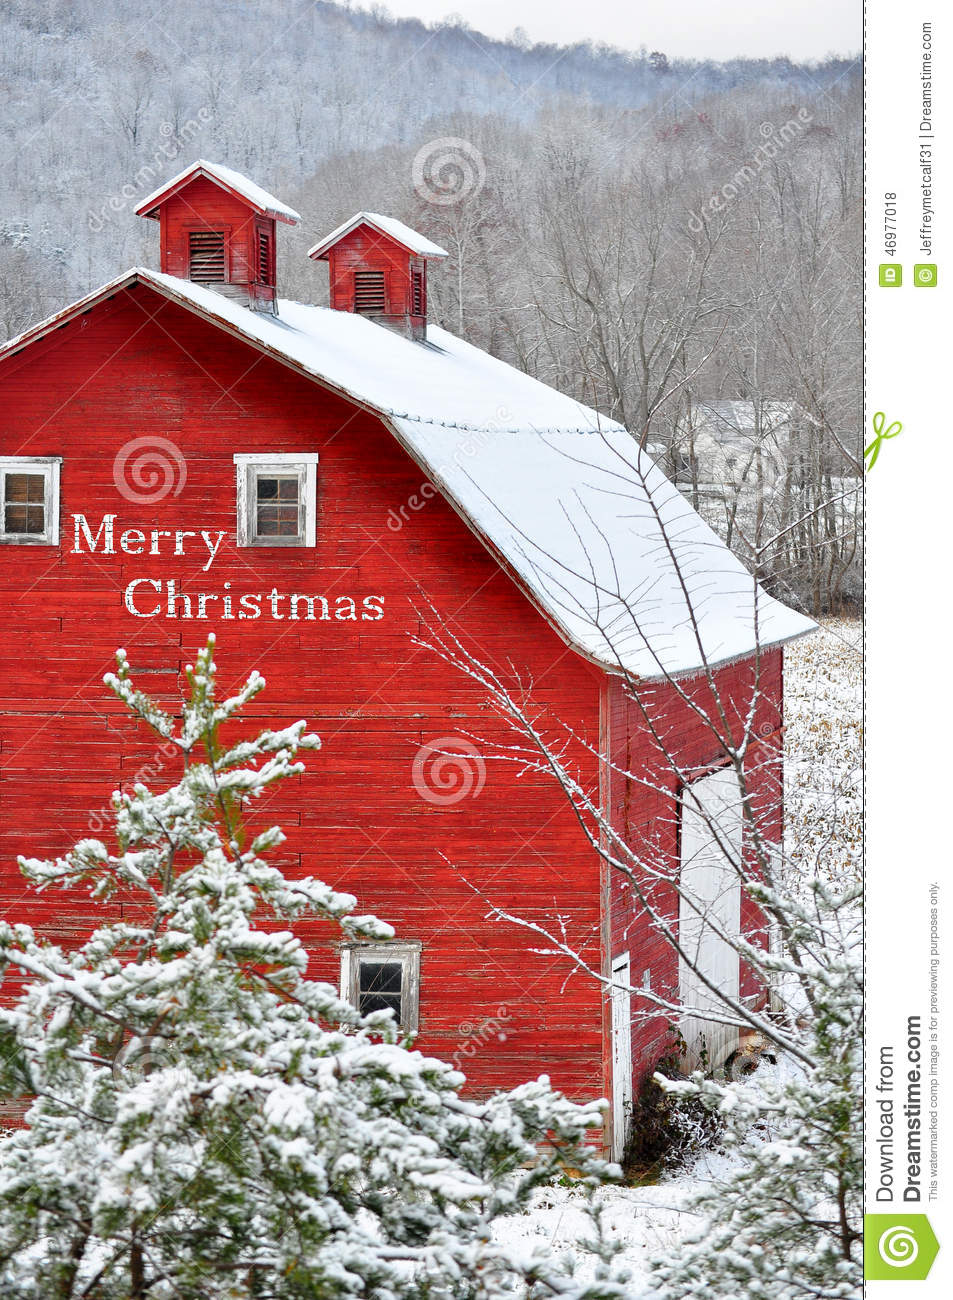 Merry Christmas Red Barn In Snow Stock Photo Image 46977018